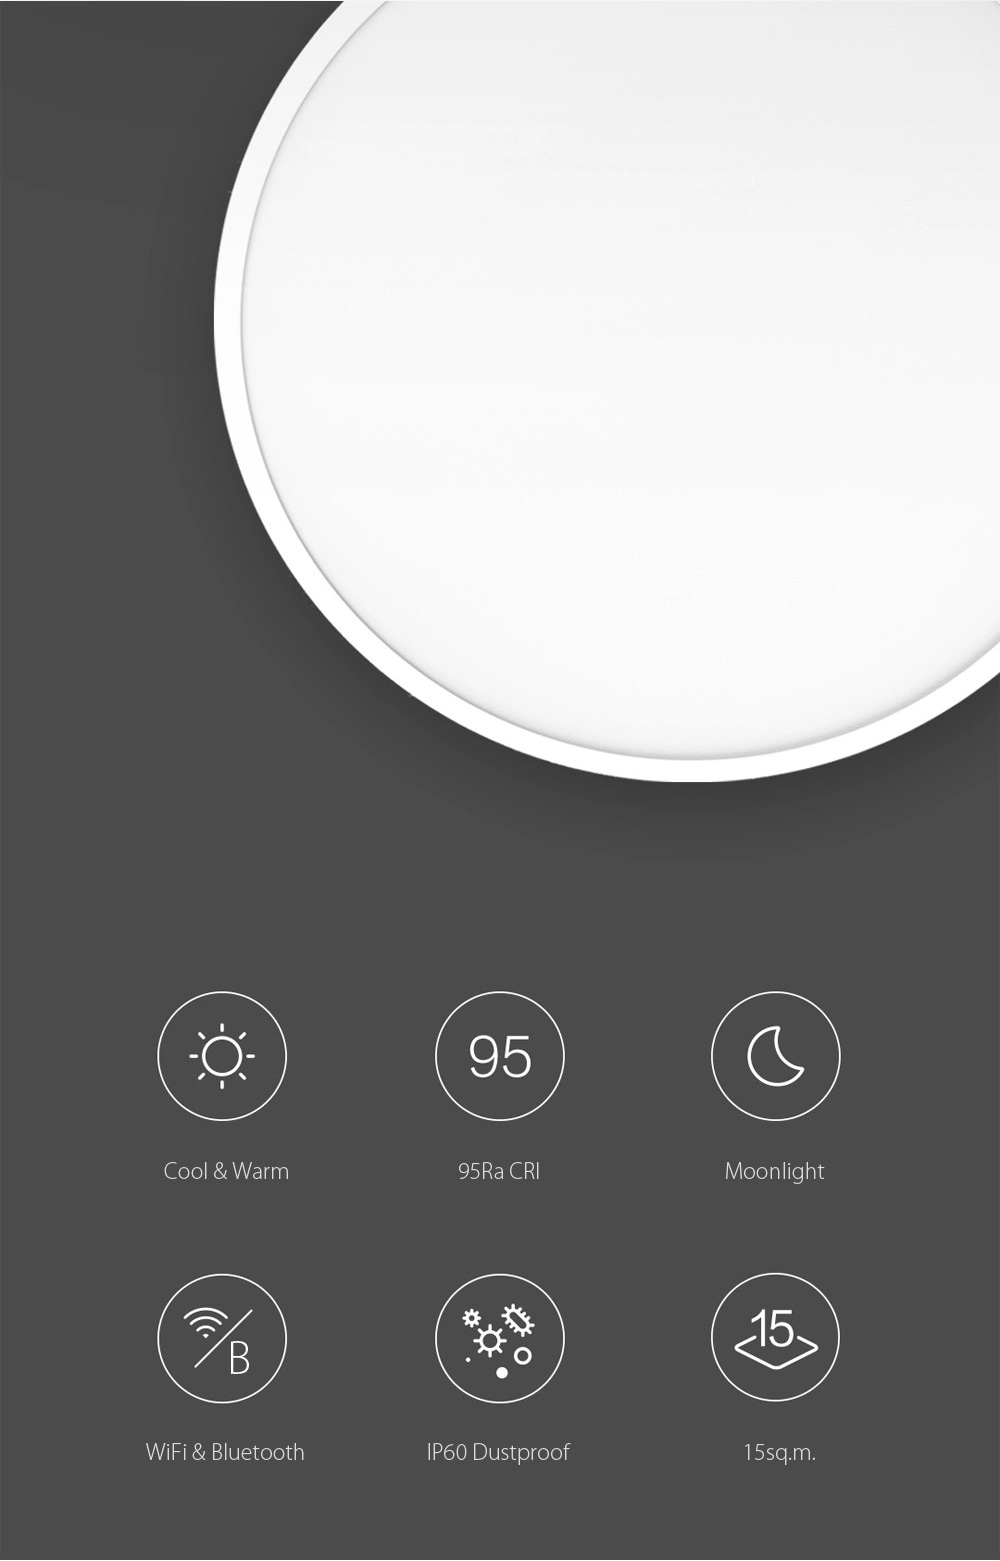 XIAOMI Yeelight Smart LED Ceiling Light Bluetooth APP Wireless Remote Control IP60 Dustproof Multiple Scene Modes